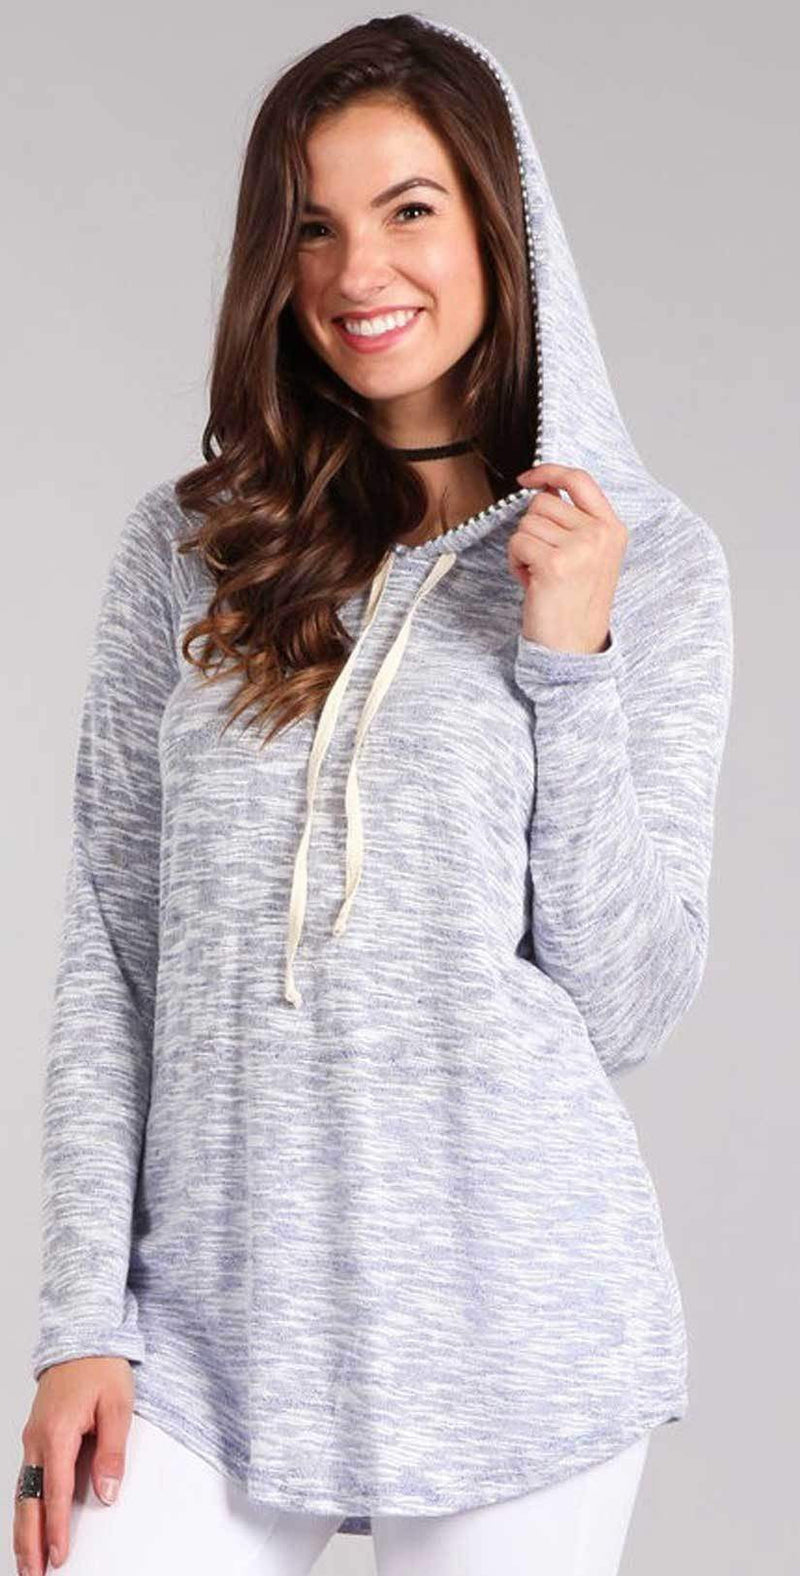 Chris and Carol Heathered Knit Long Sleeve Top with Striped Hoodie in Blue 1610080T: